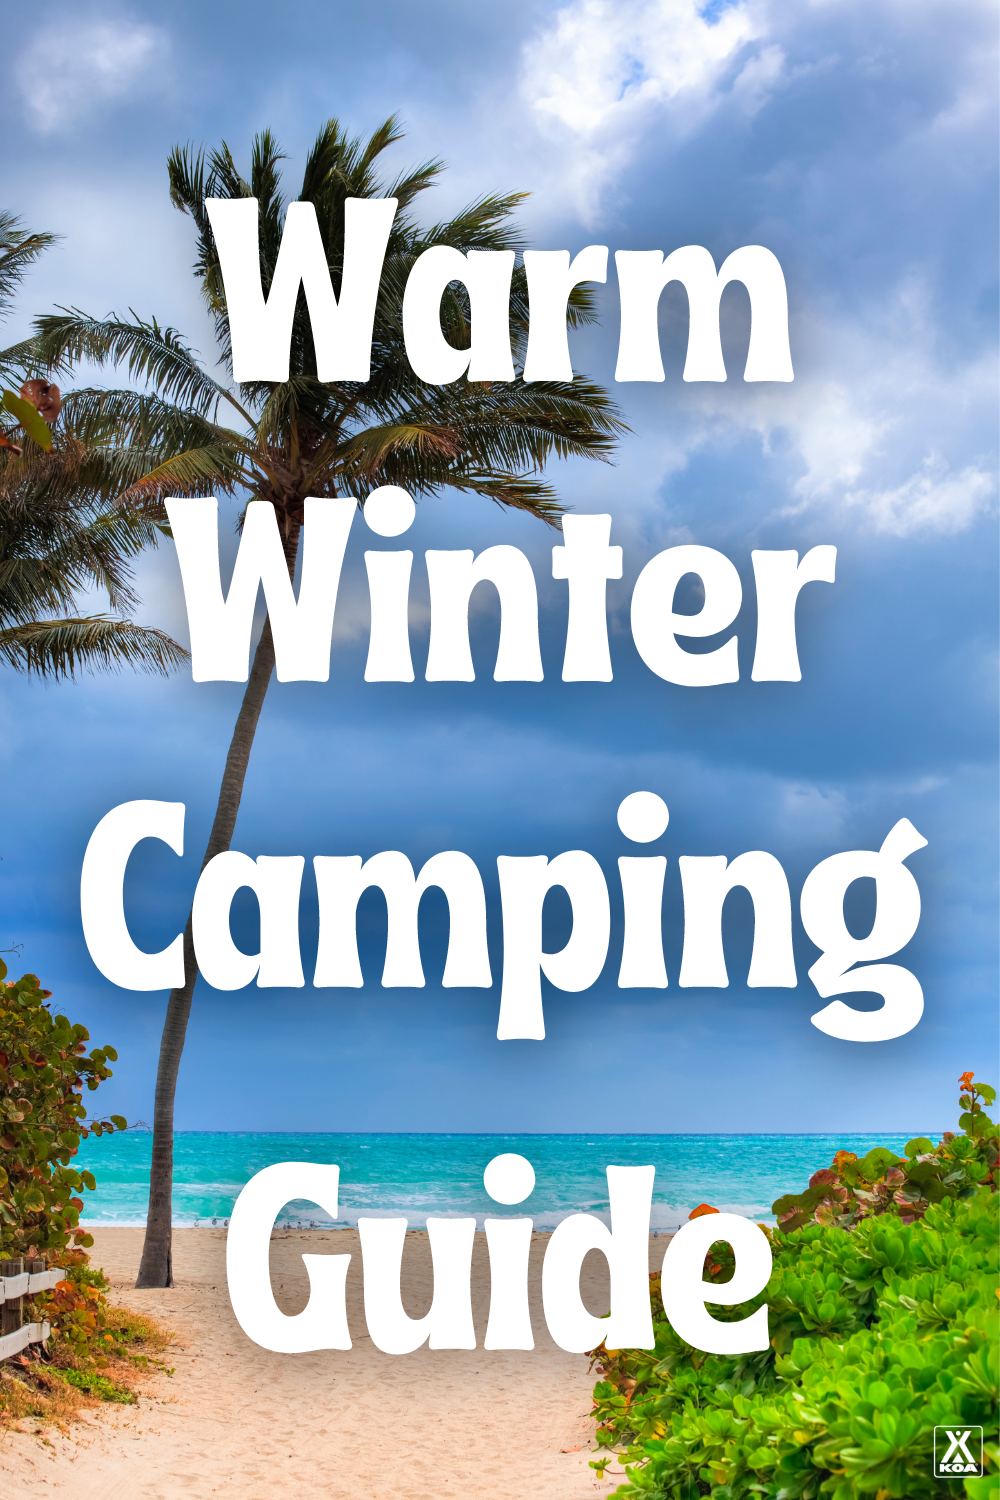 Are you looking for a warm winter getaway? Check out our top warm winter camping destinations, complete with top local activities & popular attractions!